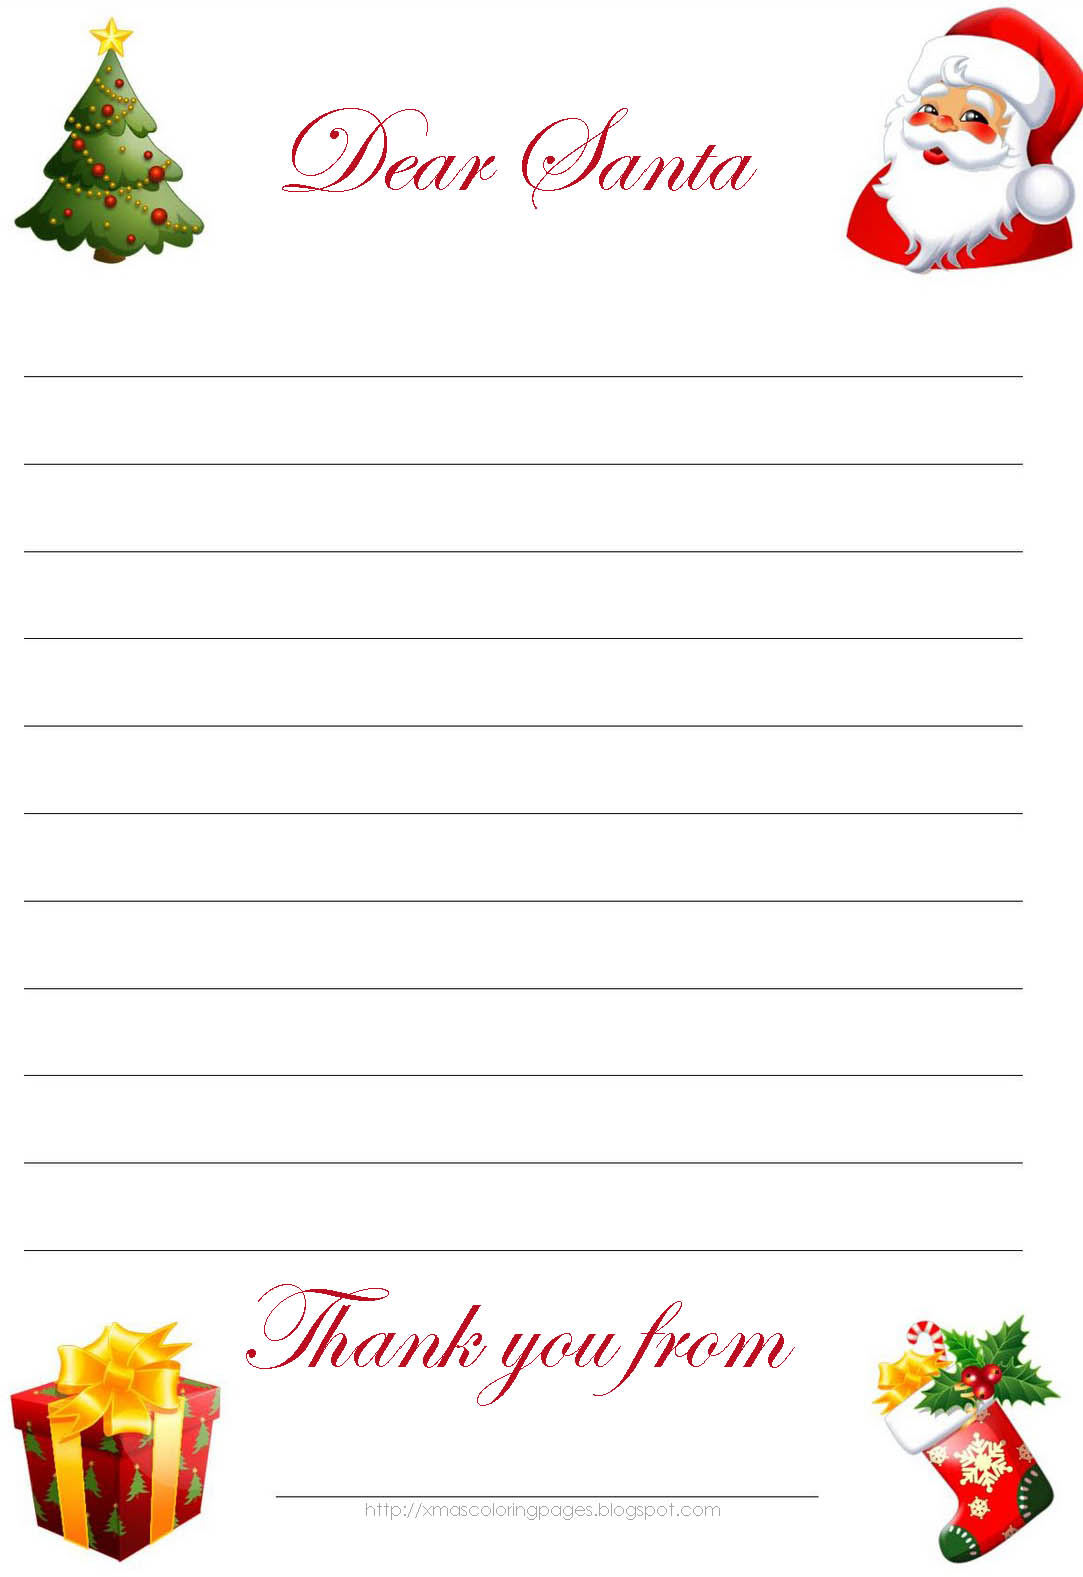 Santa letter borders militaryalicious santa letter borders spiritdancerdesigns Image collections